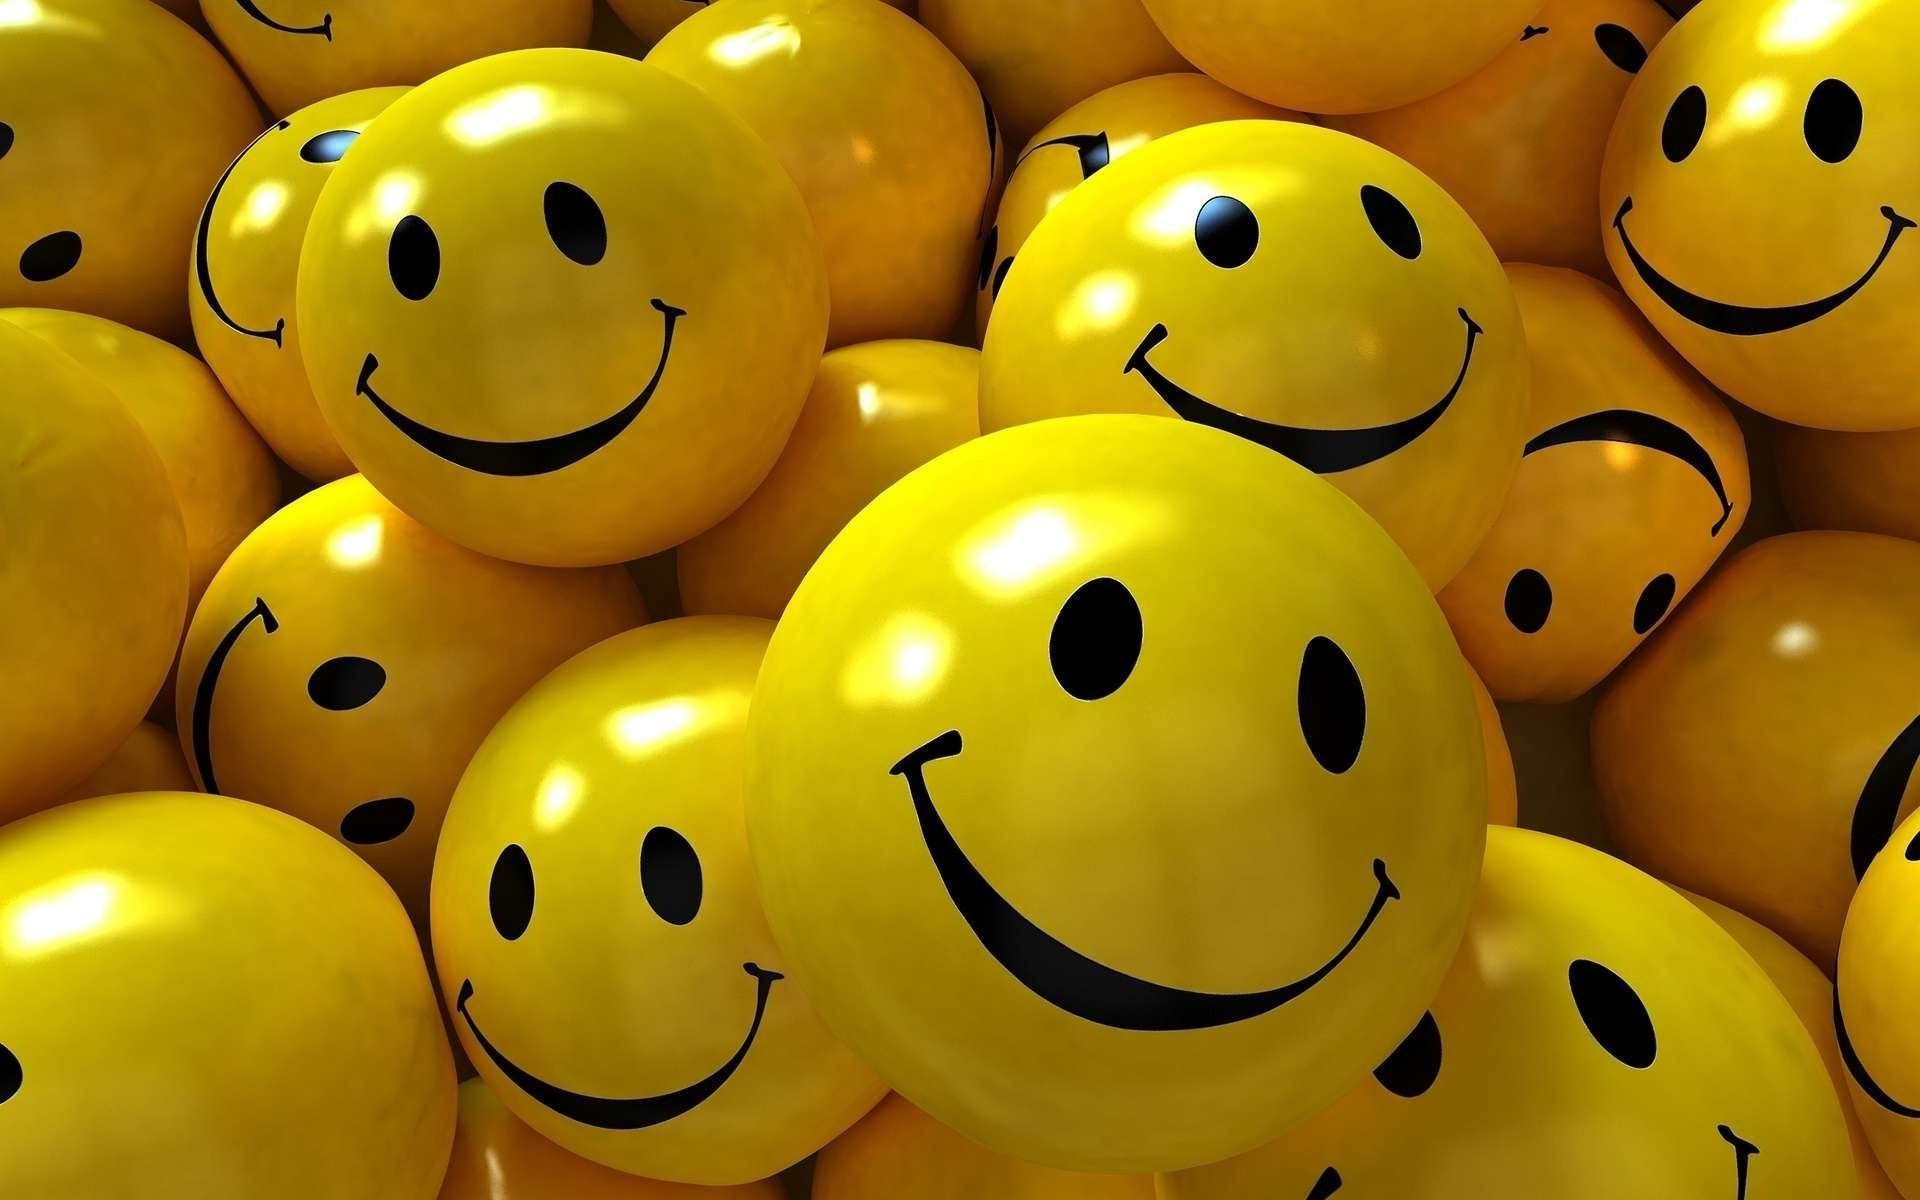 Tile Smiley Faces Mobile Phone Wallpapers Hd Wallpaper For 1024×768 Smiley  Faces Images Wallpapers (33 Wallpapers)   Adorable Wallpapers   Pinterest  …